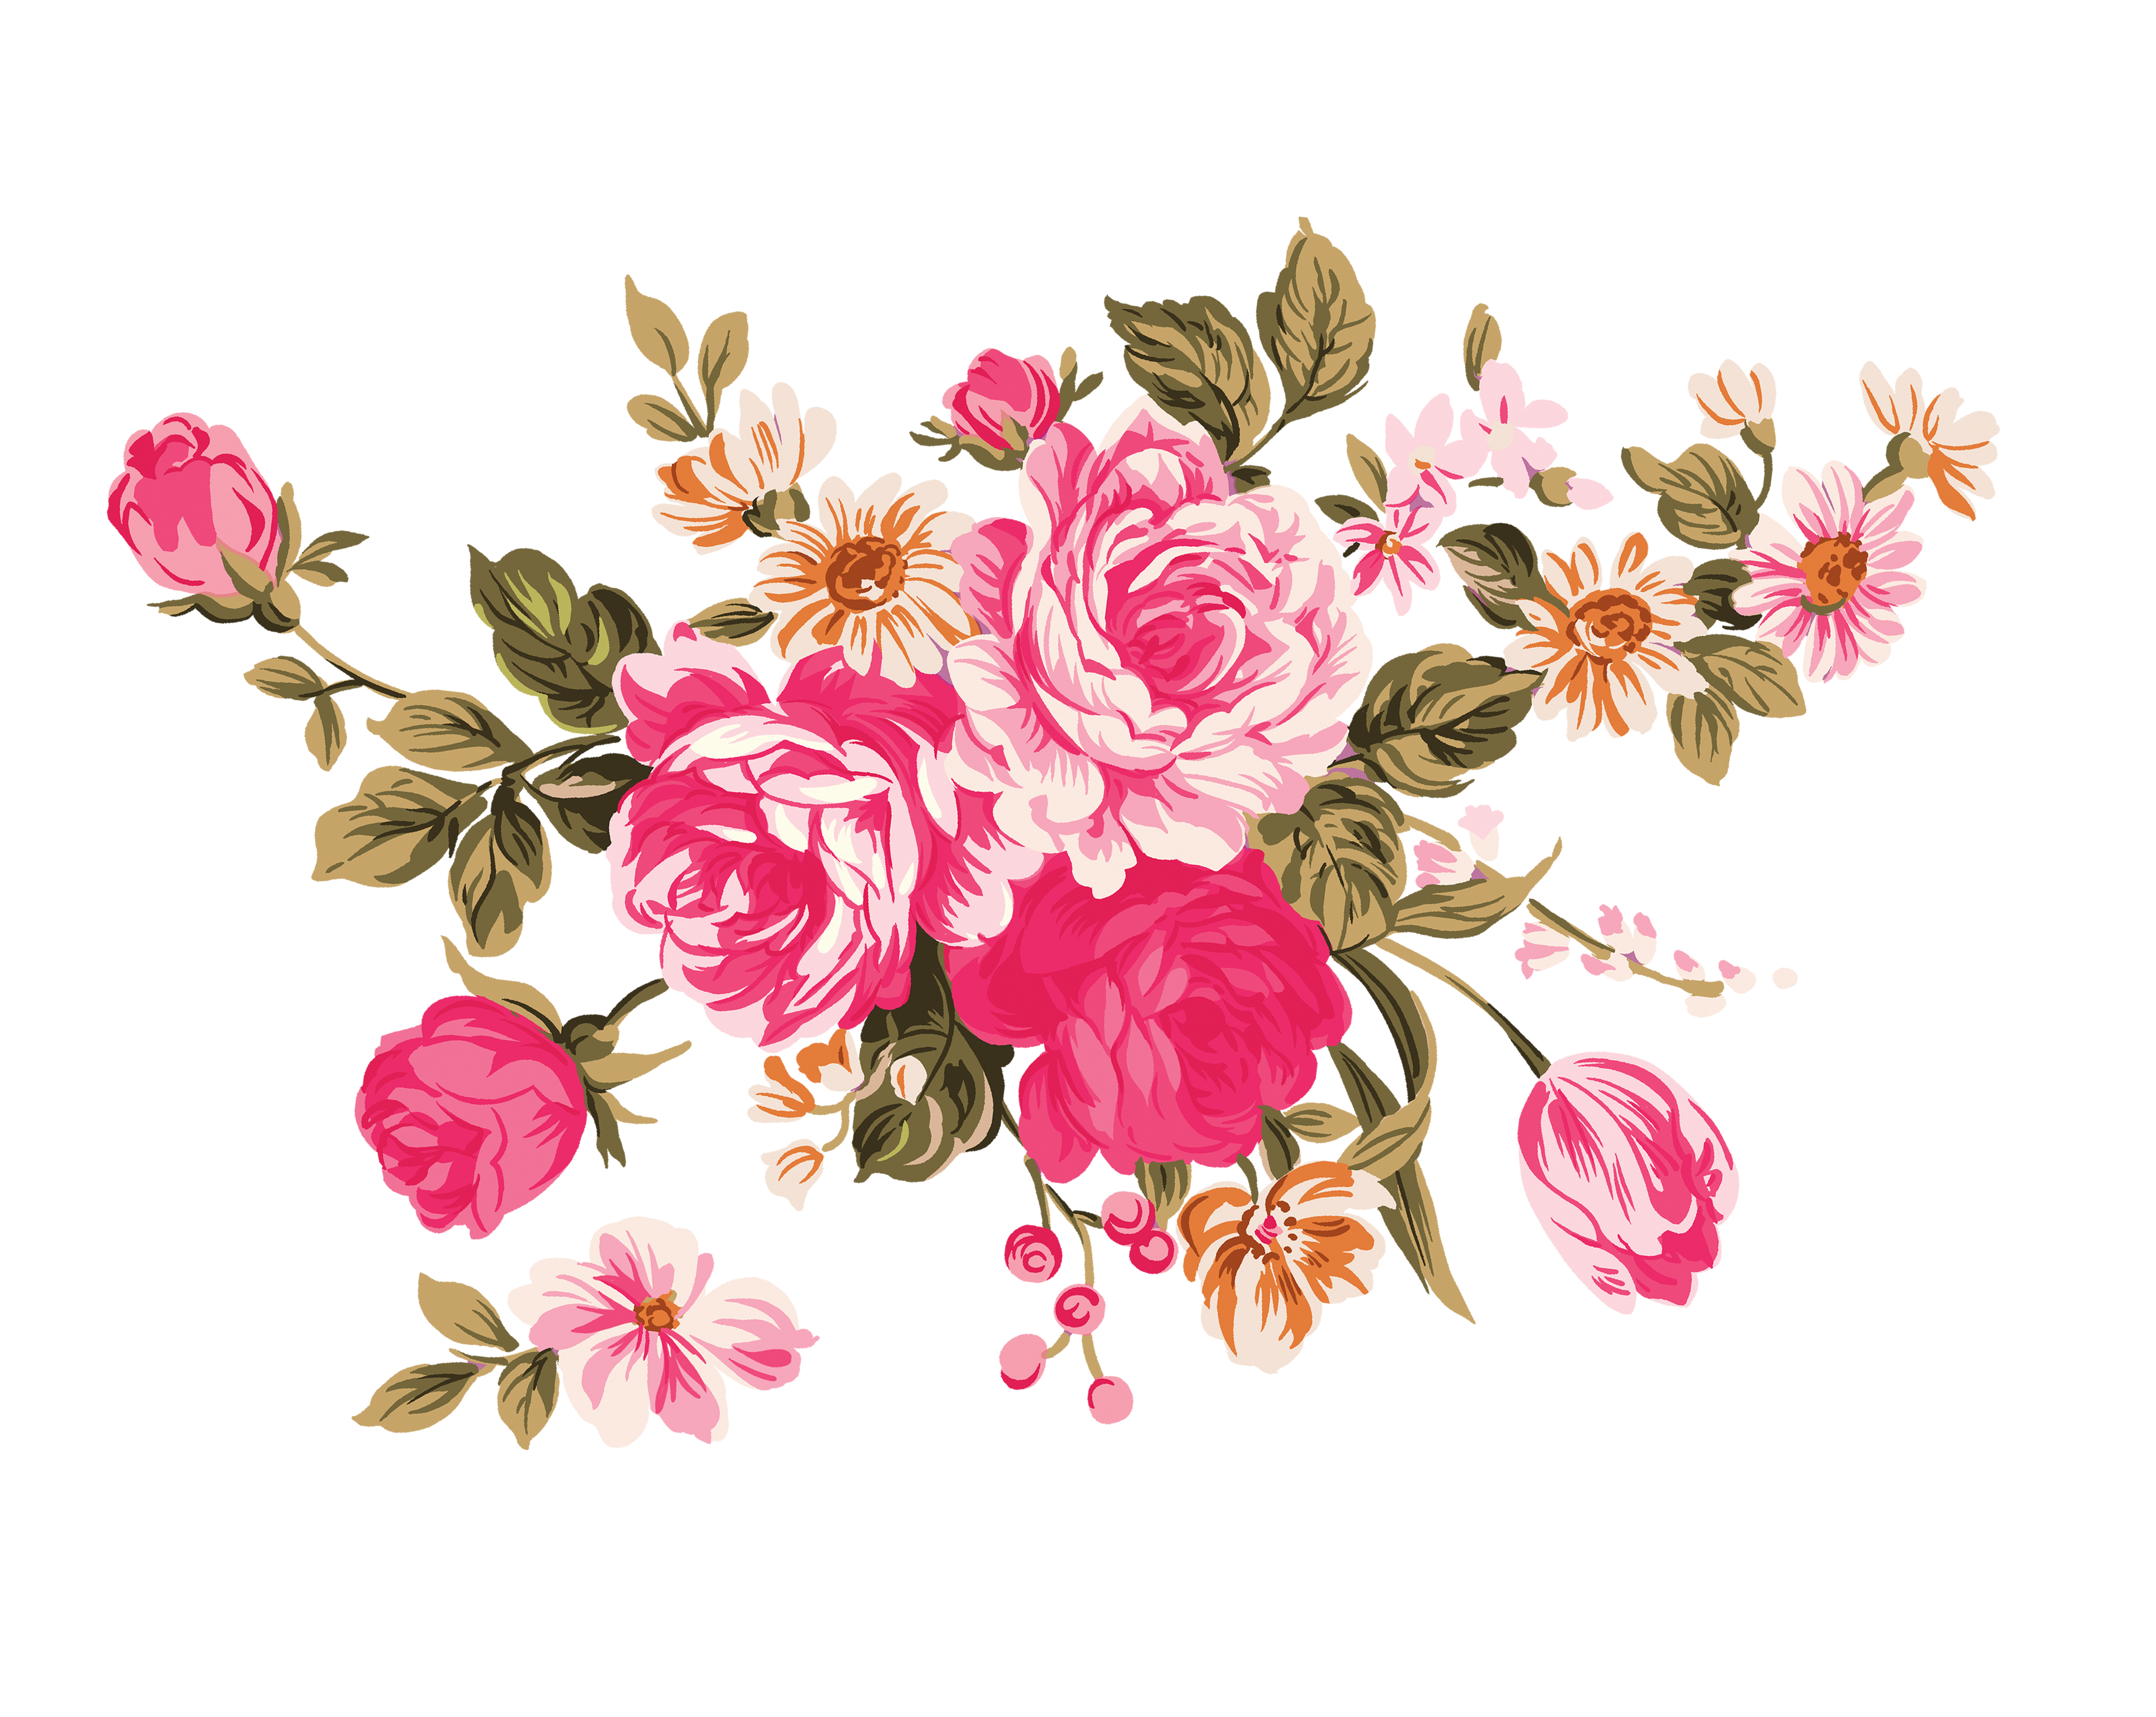 Free clipart flower garden graphic royalty free download Flower Garden roses Clip art - Peony 3658*2914 transprent Png Free ... graphic royalty free download